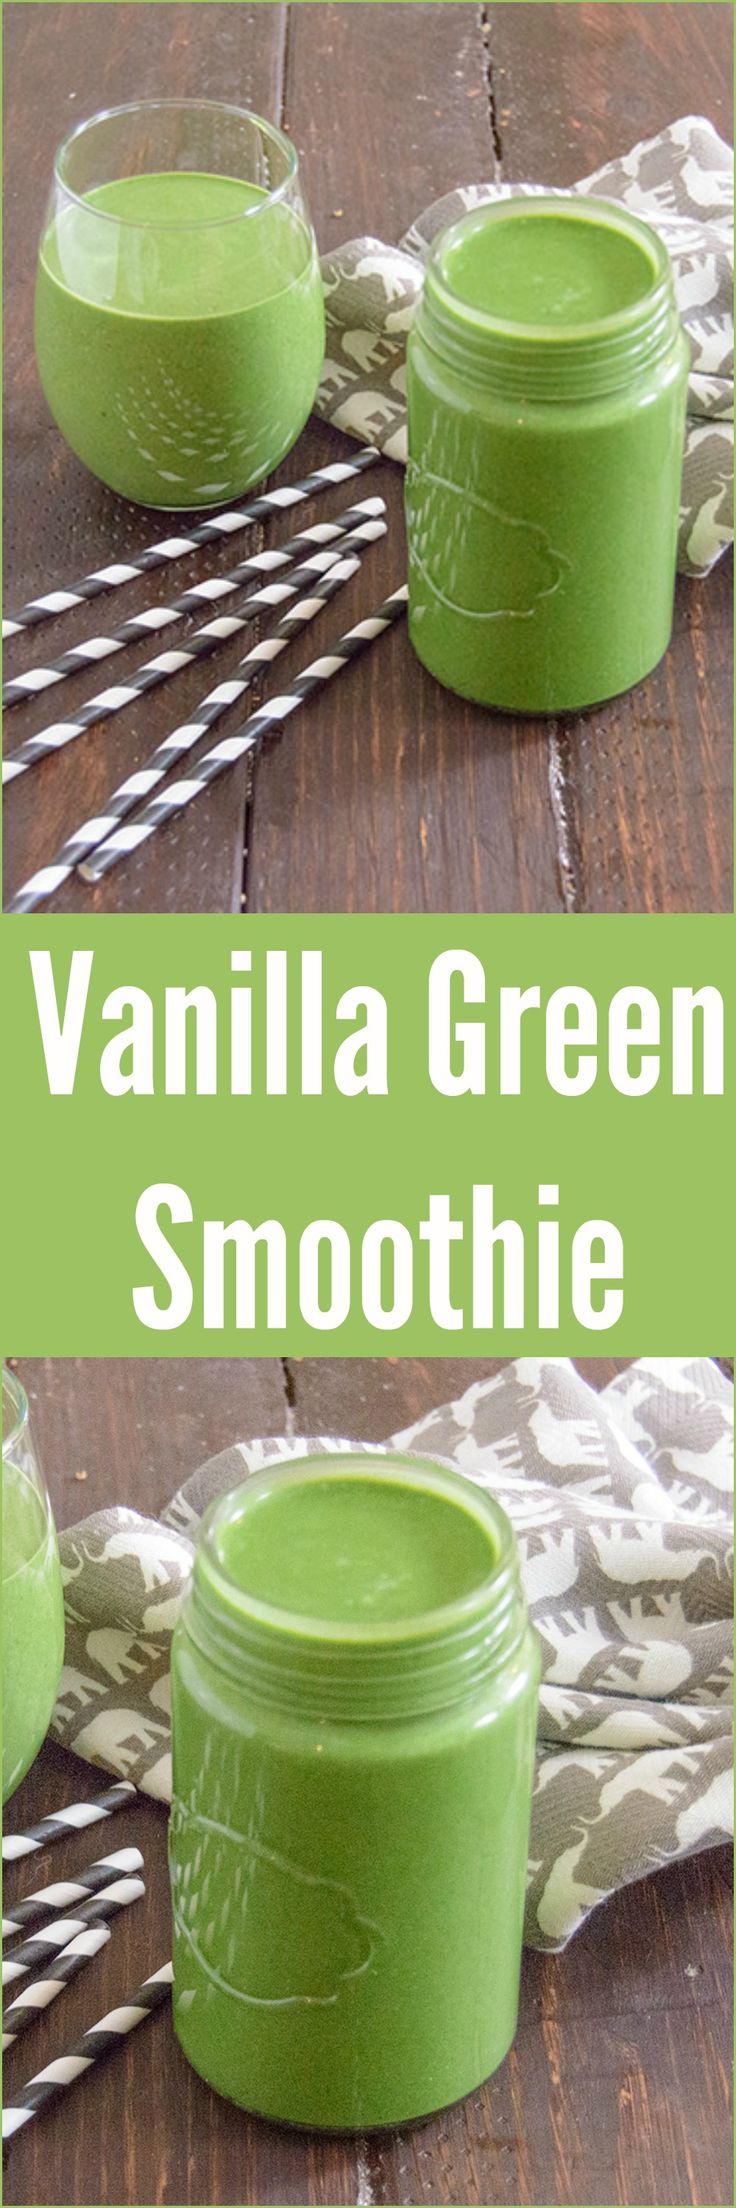 Protein Packed Vanilla Green Smoothie - start your day off with vegetables! This vanilla smoothie is low fat, high protein and vegan!